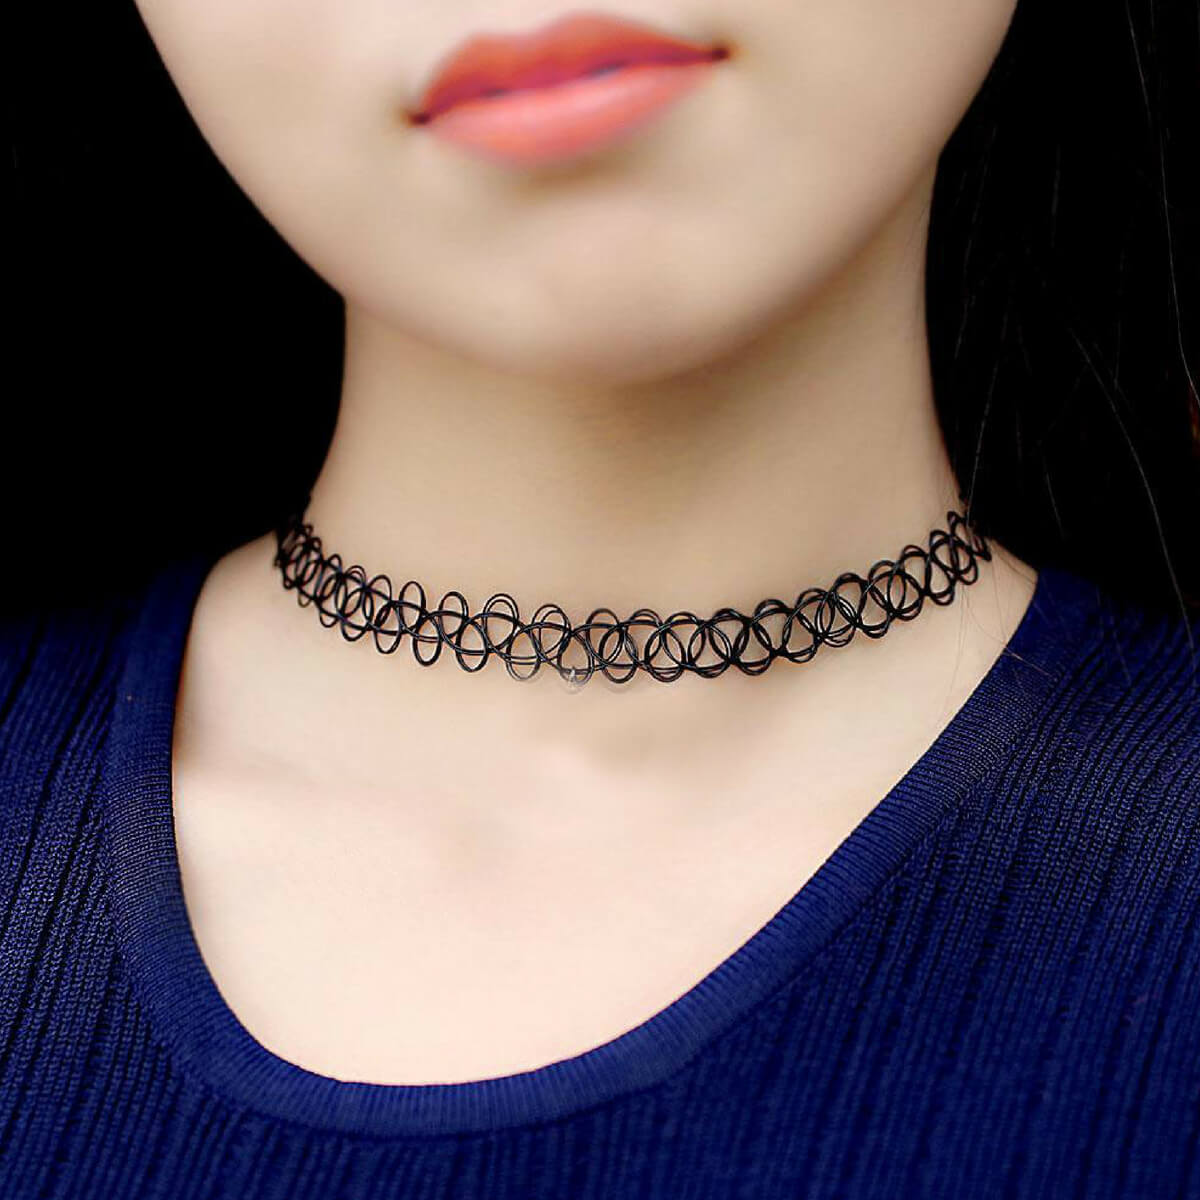 Buy Tattoo Necklace For Women Pack Of 3 Products Online